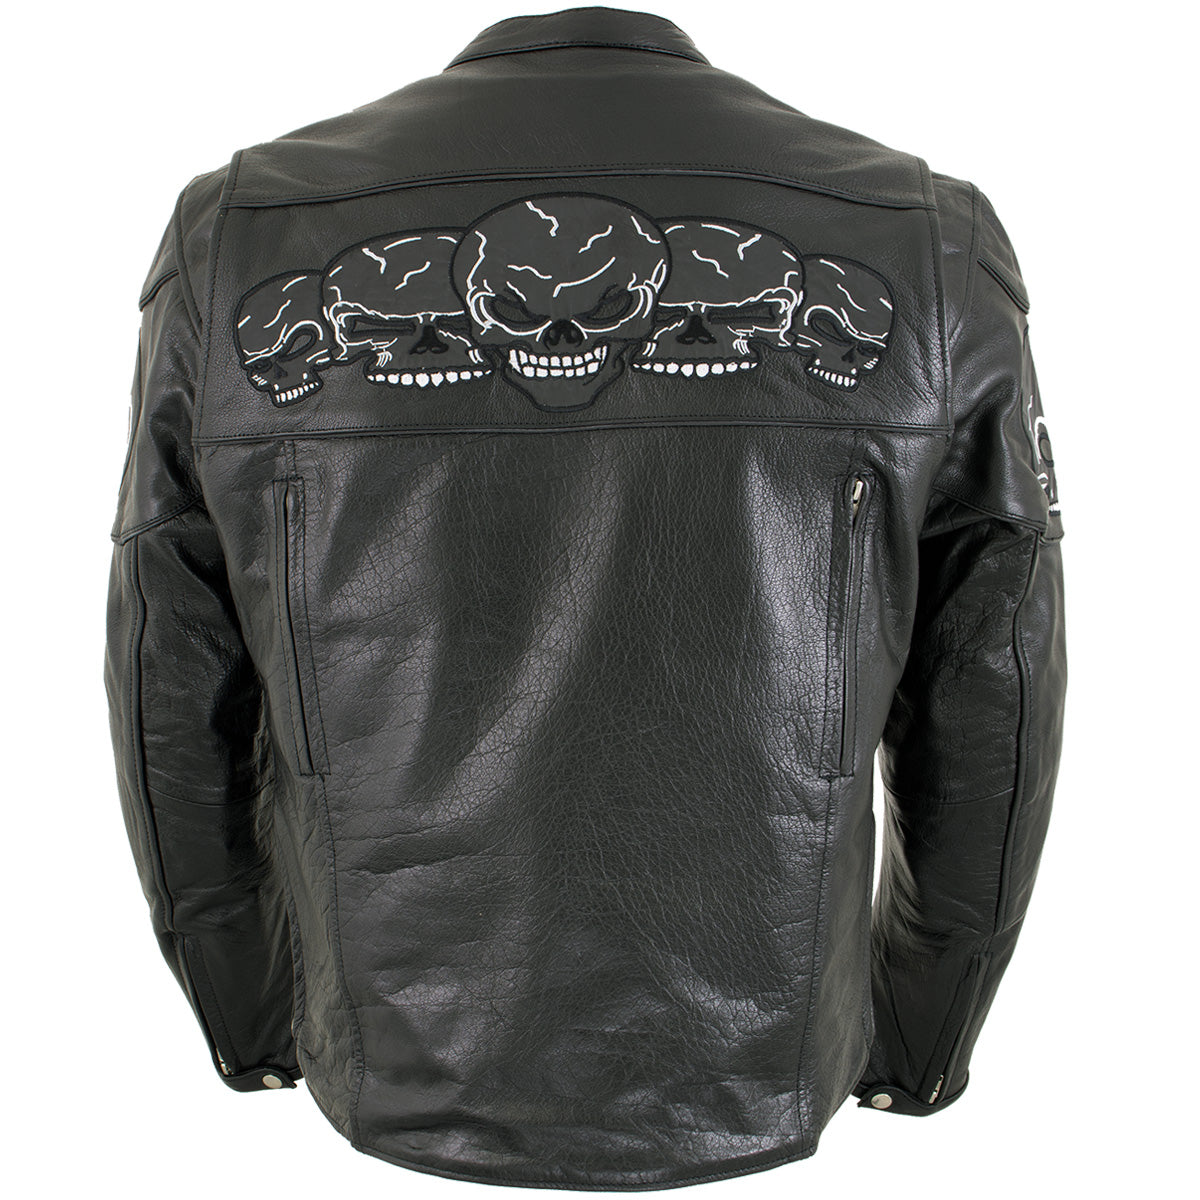 Xelement BXU6050 Men's '3 Skull Head' Black Leather Motorcycle Jacket